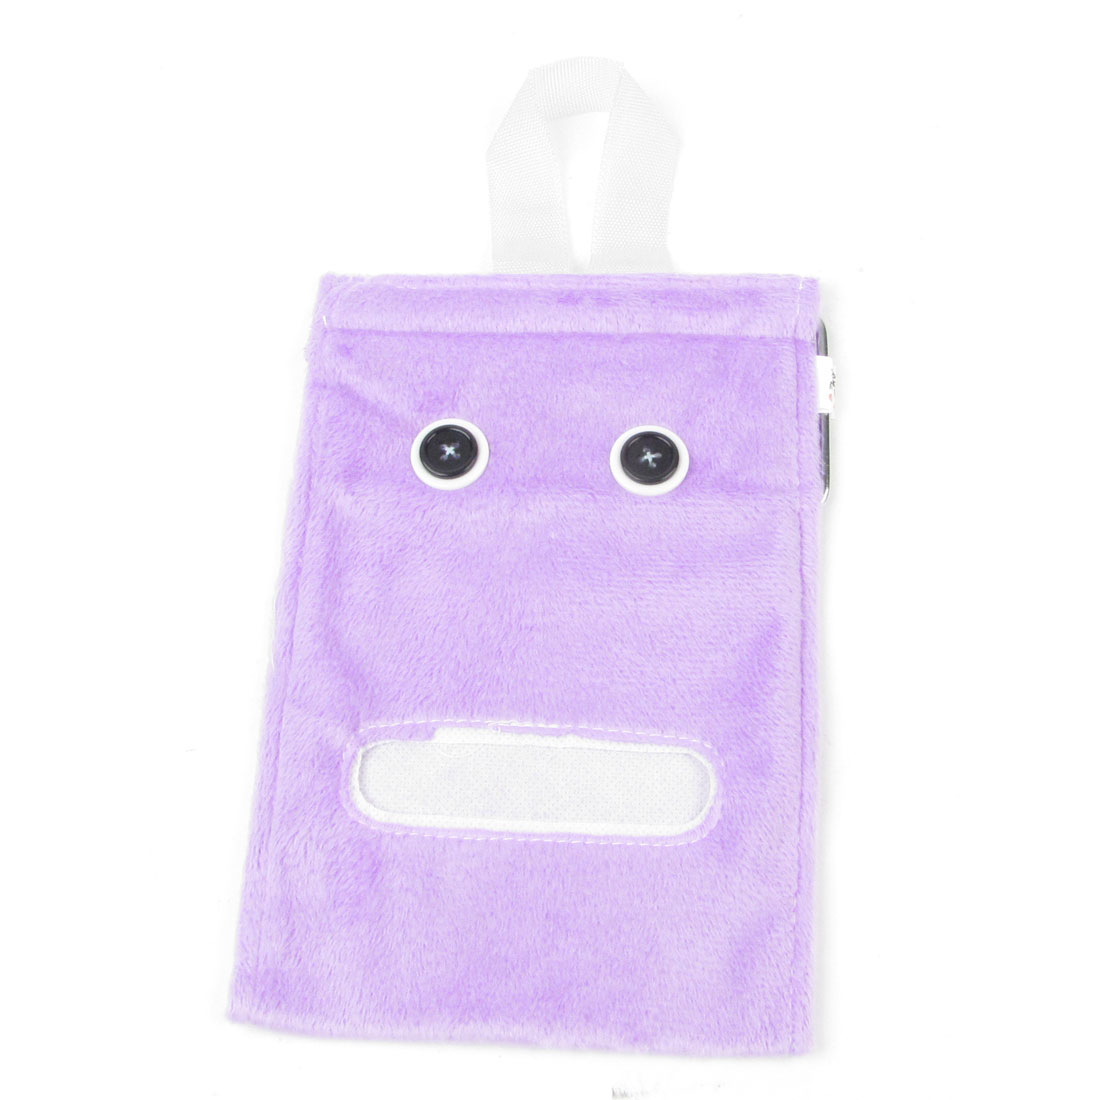 Washroom Toilet Roll Paper Towel Cover Tissue Plush Hanging Dispenser Purple